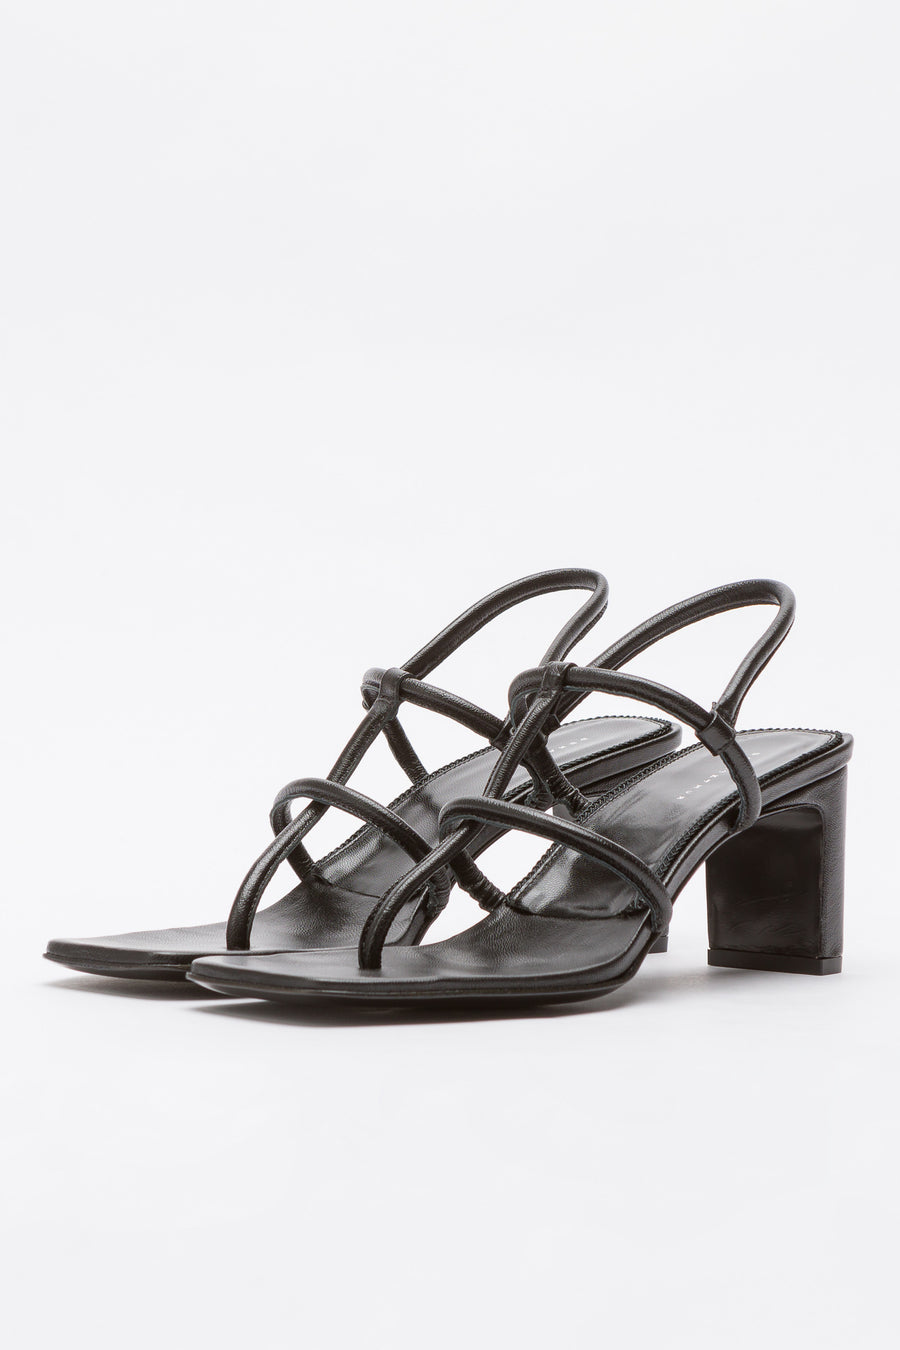 Dorateymur Thong Sandal in Black Metallic Leather - Notre